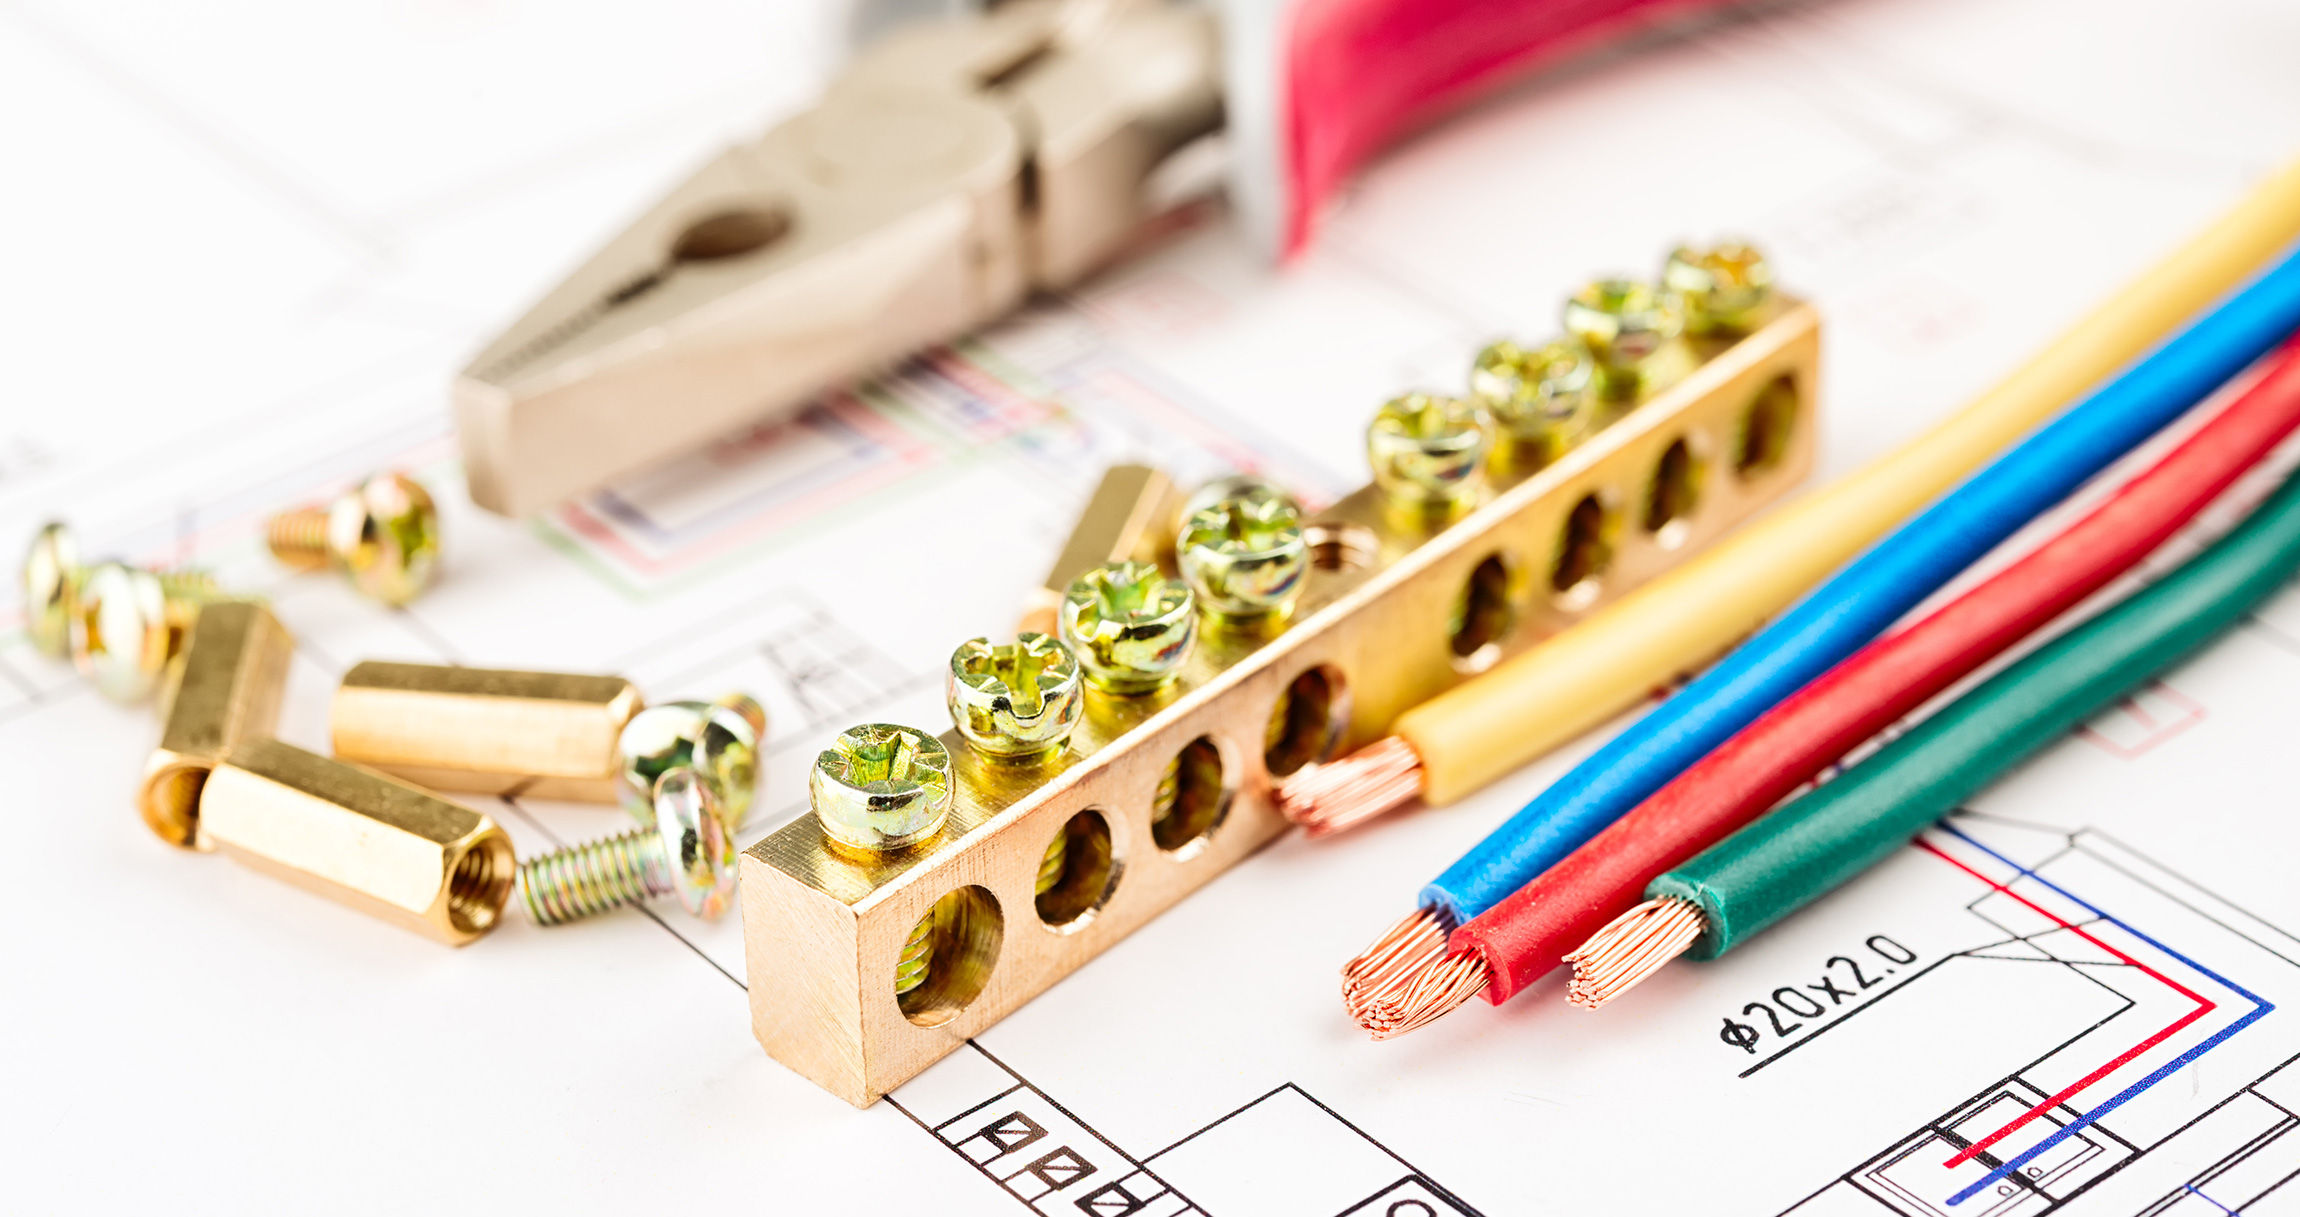 Electricians-Get The Best Quality By Choosing The Best Ones For The Job